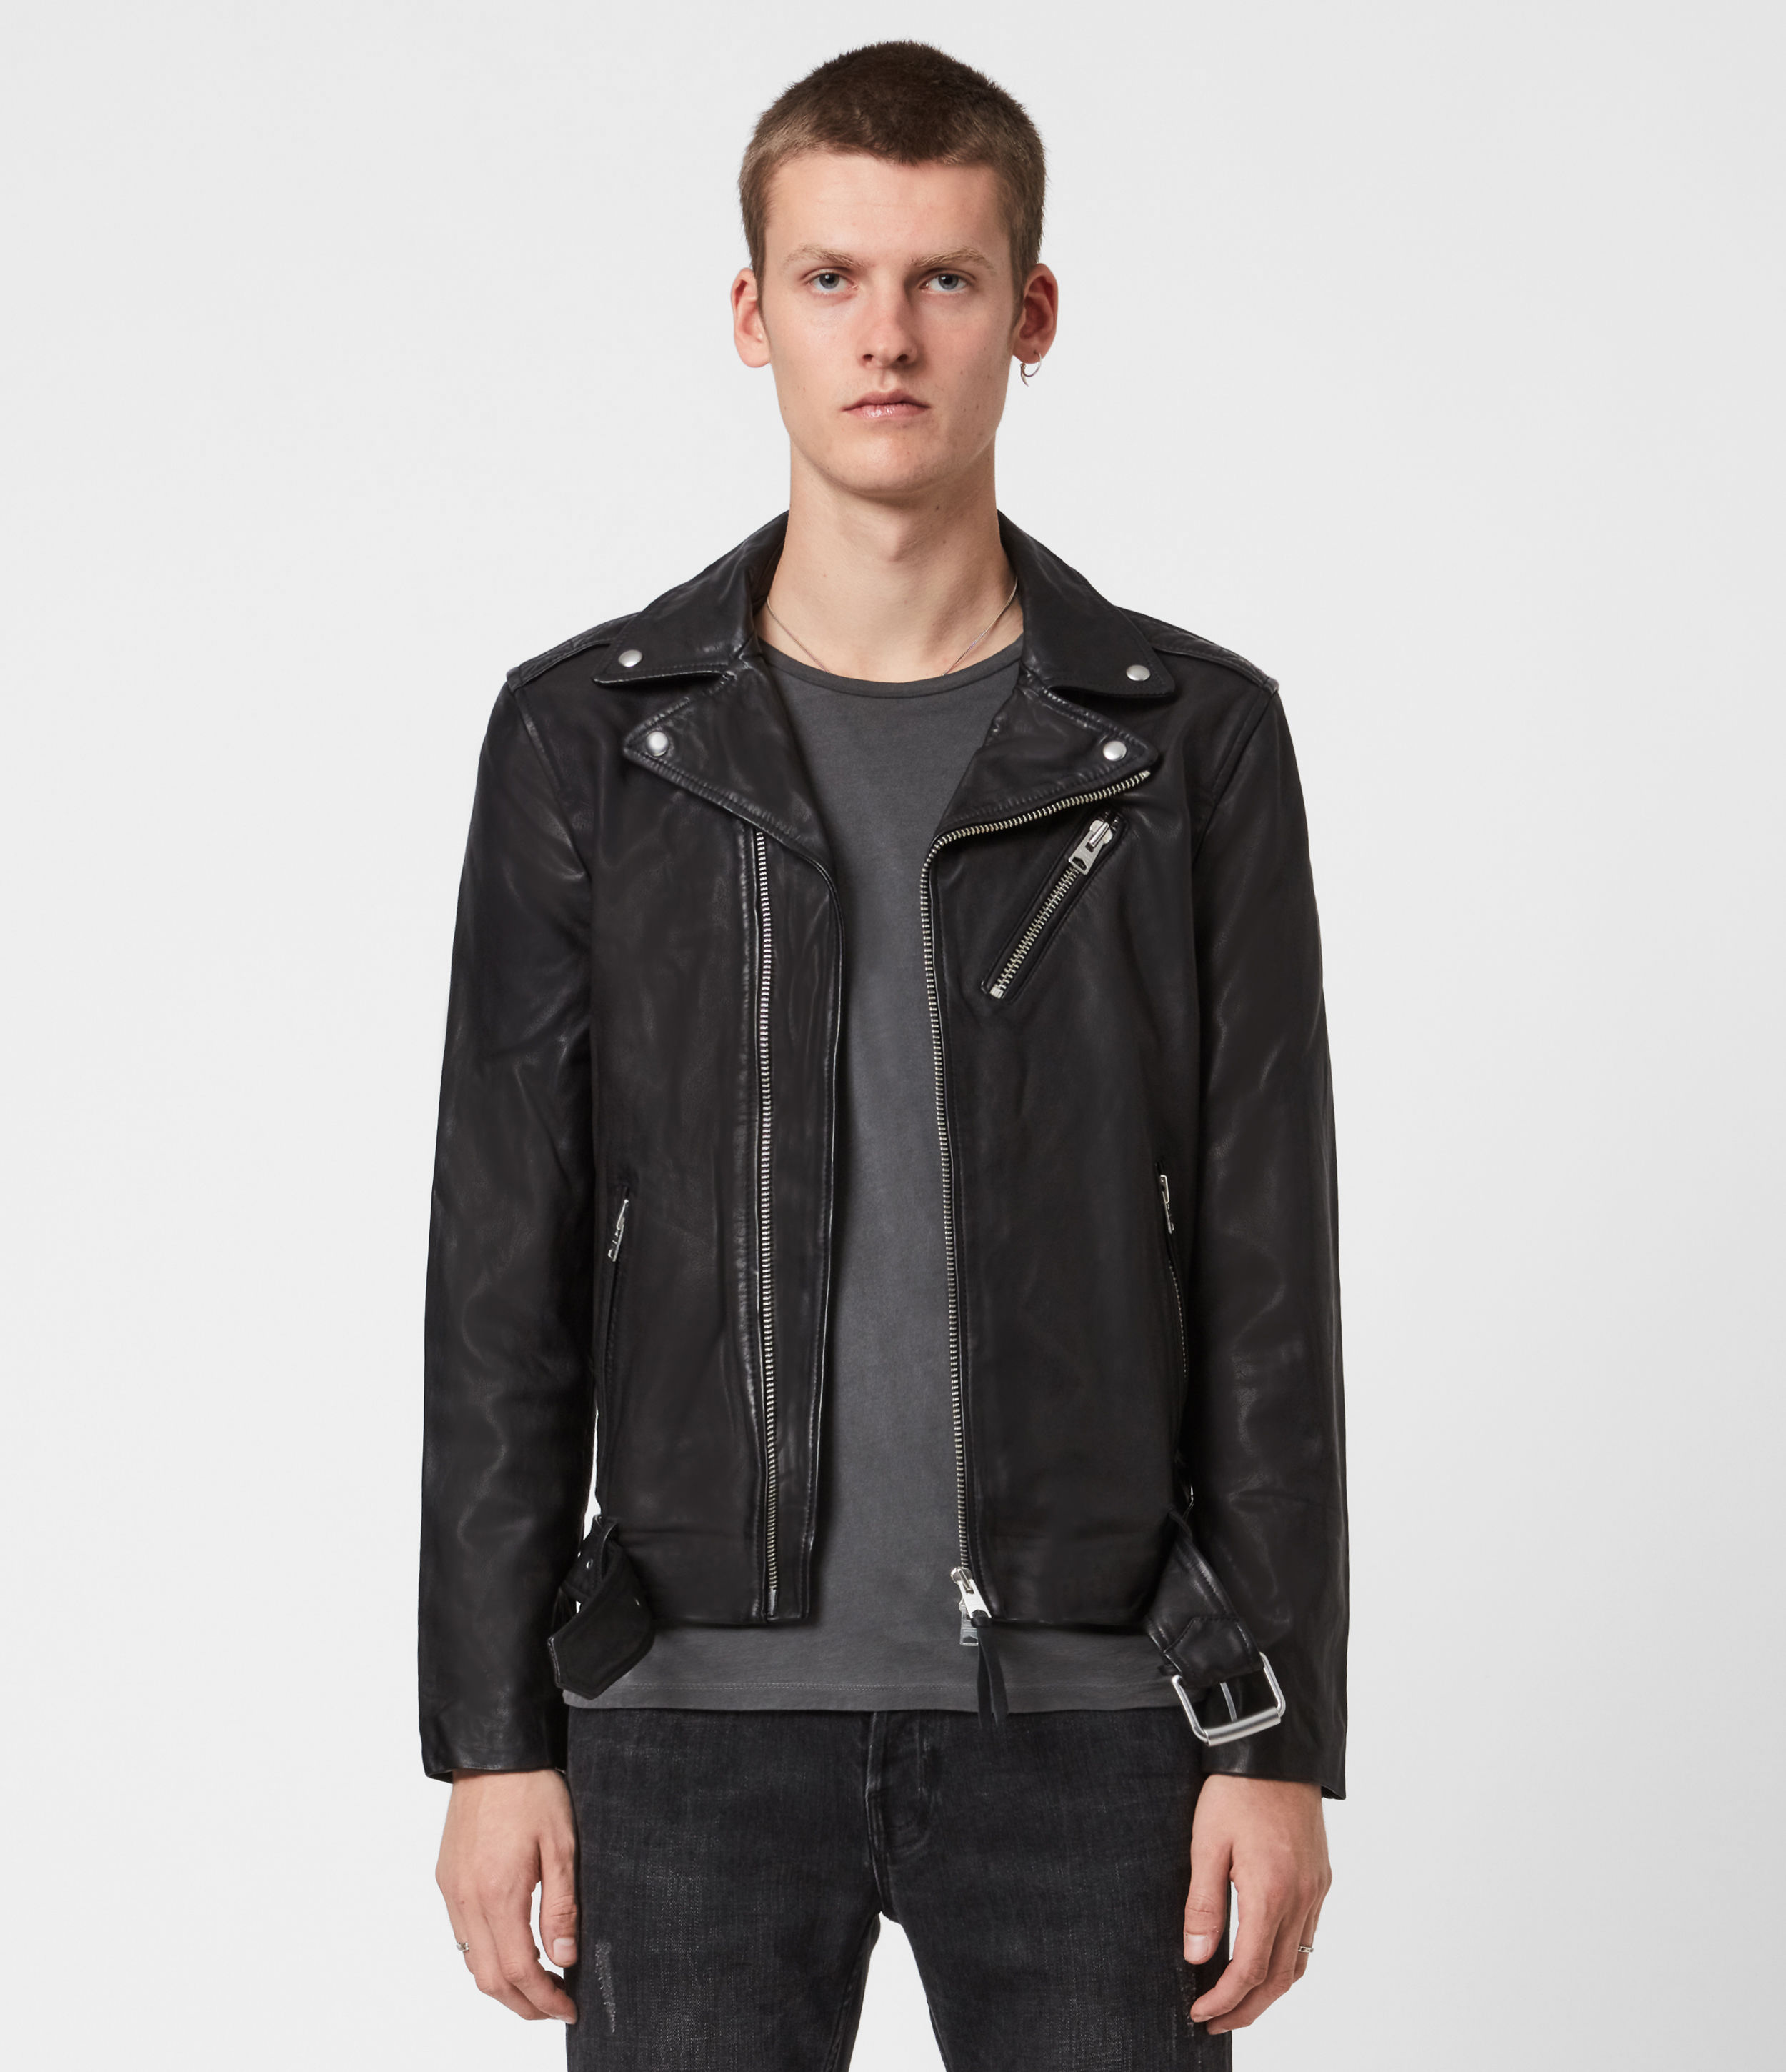 AllSaints Rigg Leather Biker Jacket, Black, Mens, Size: XXL